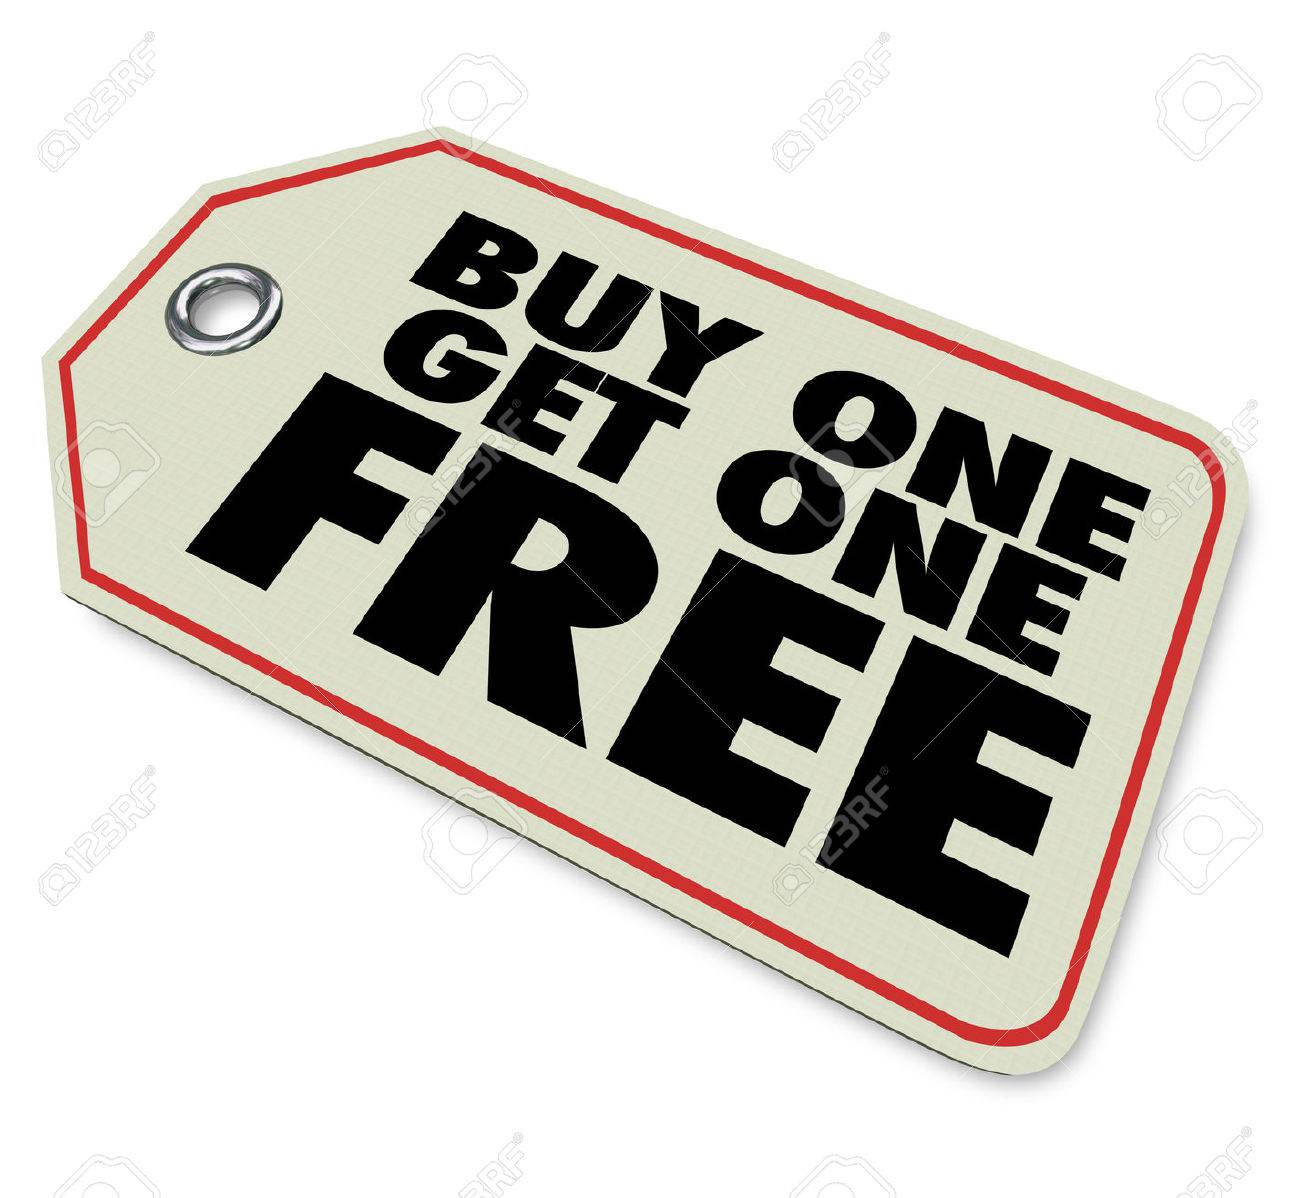 A Price Tag With Words Buy One Get One Free To Illustrate A Special  Discount Or